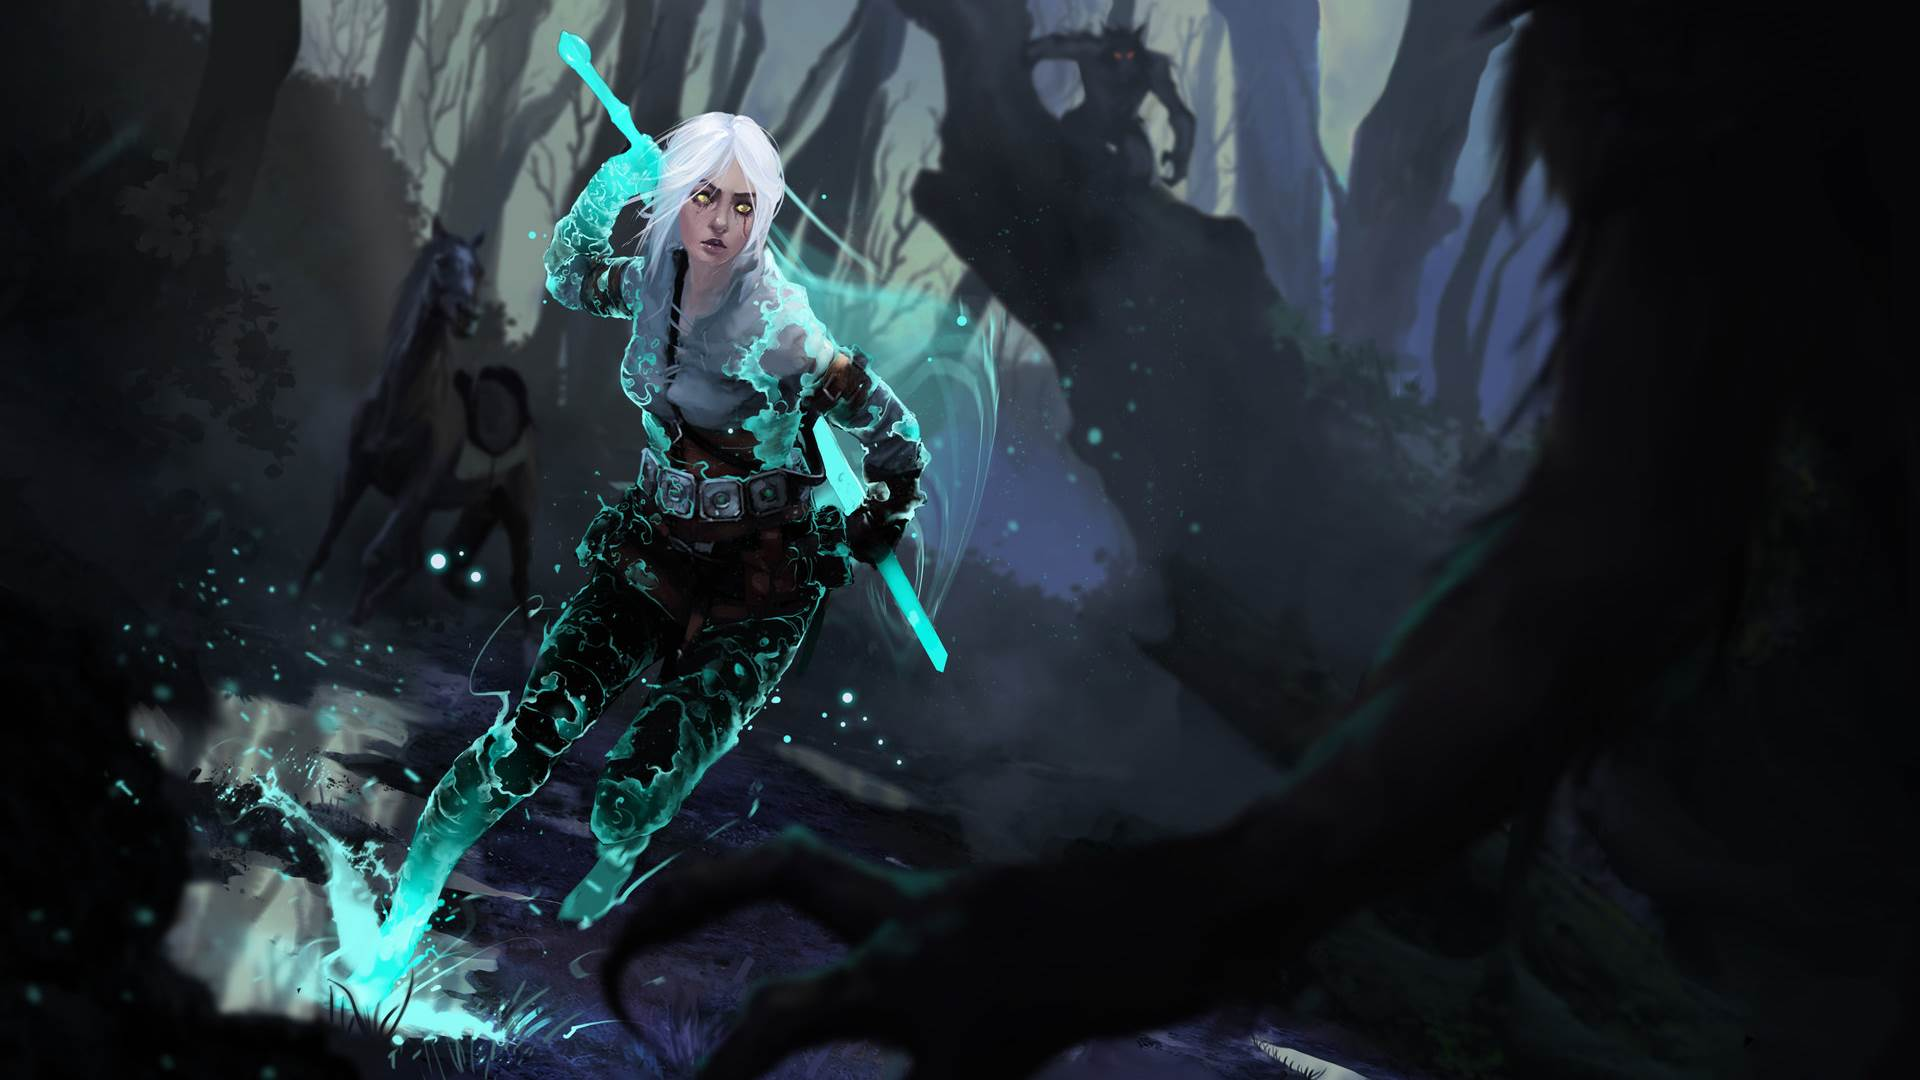 Download 1920 1080 Hd Wallpaper The Witcher 3 Geralt Alone Forest